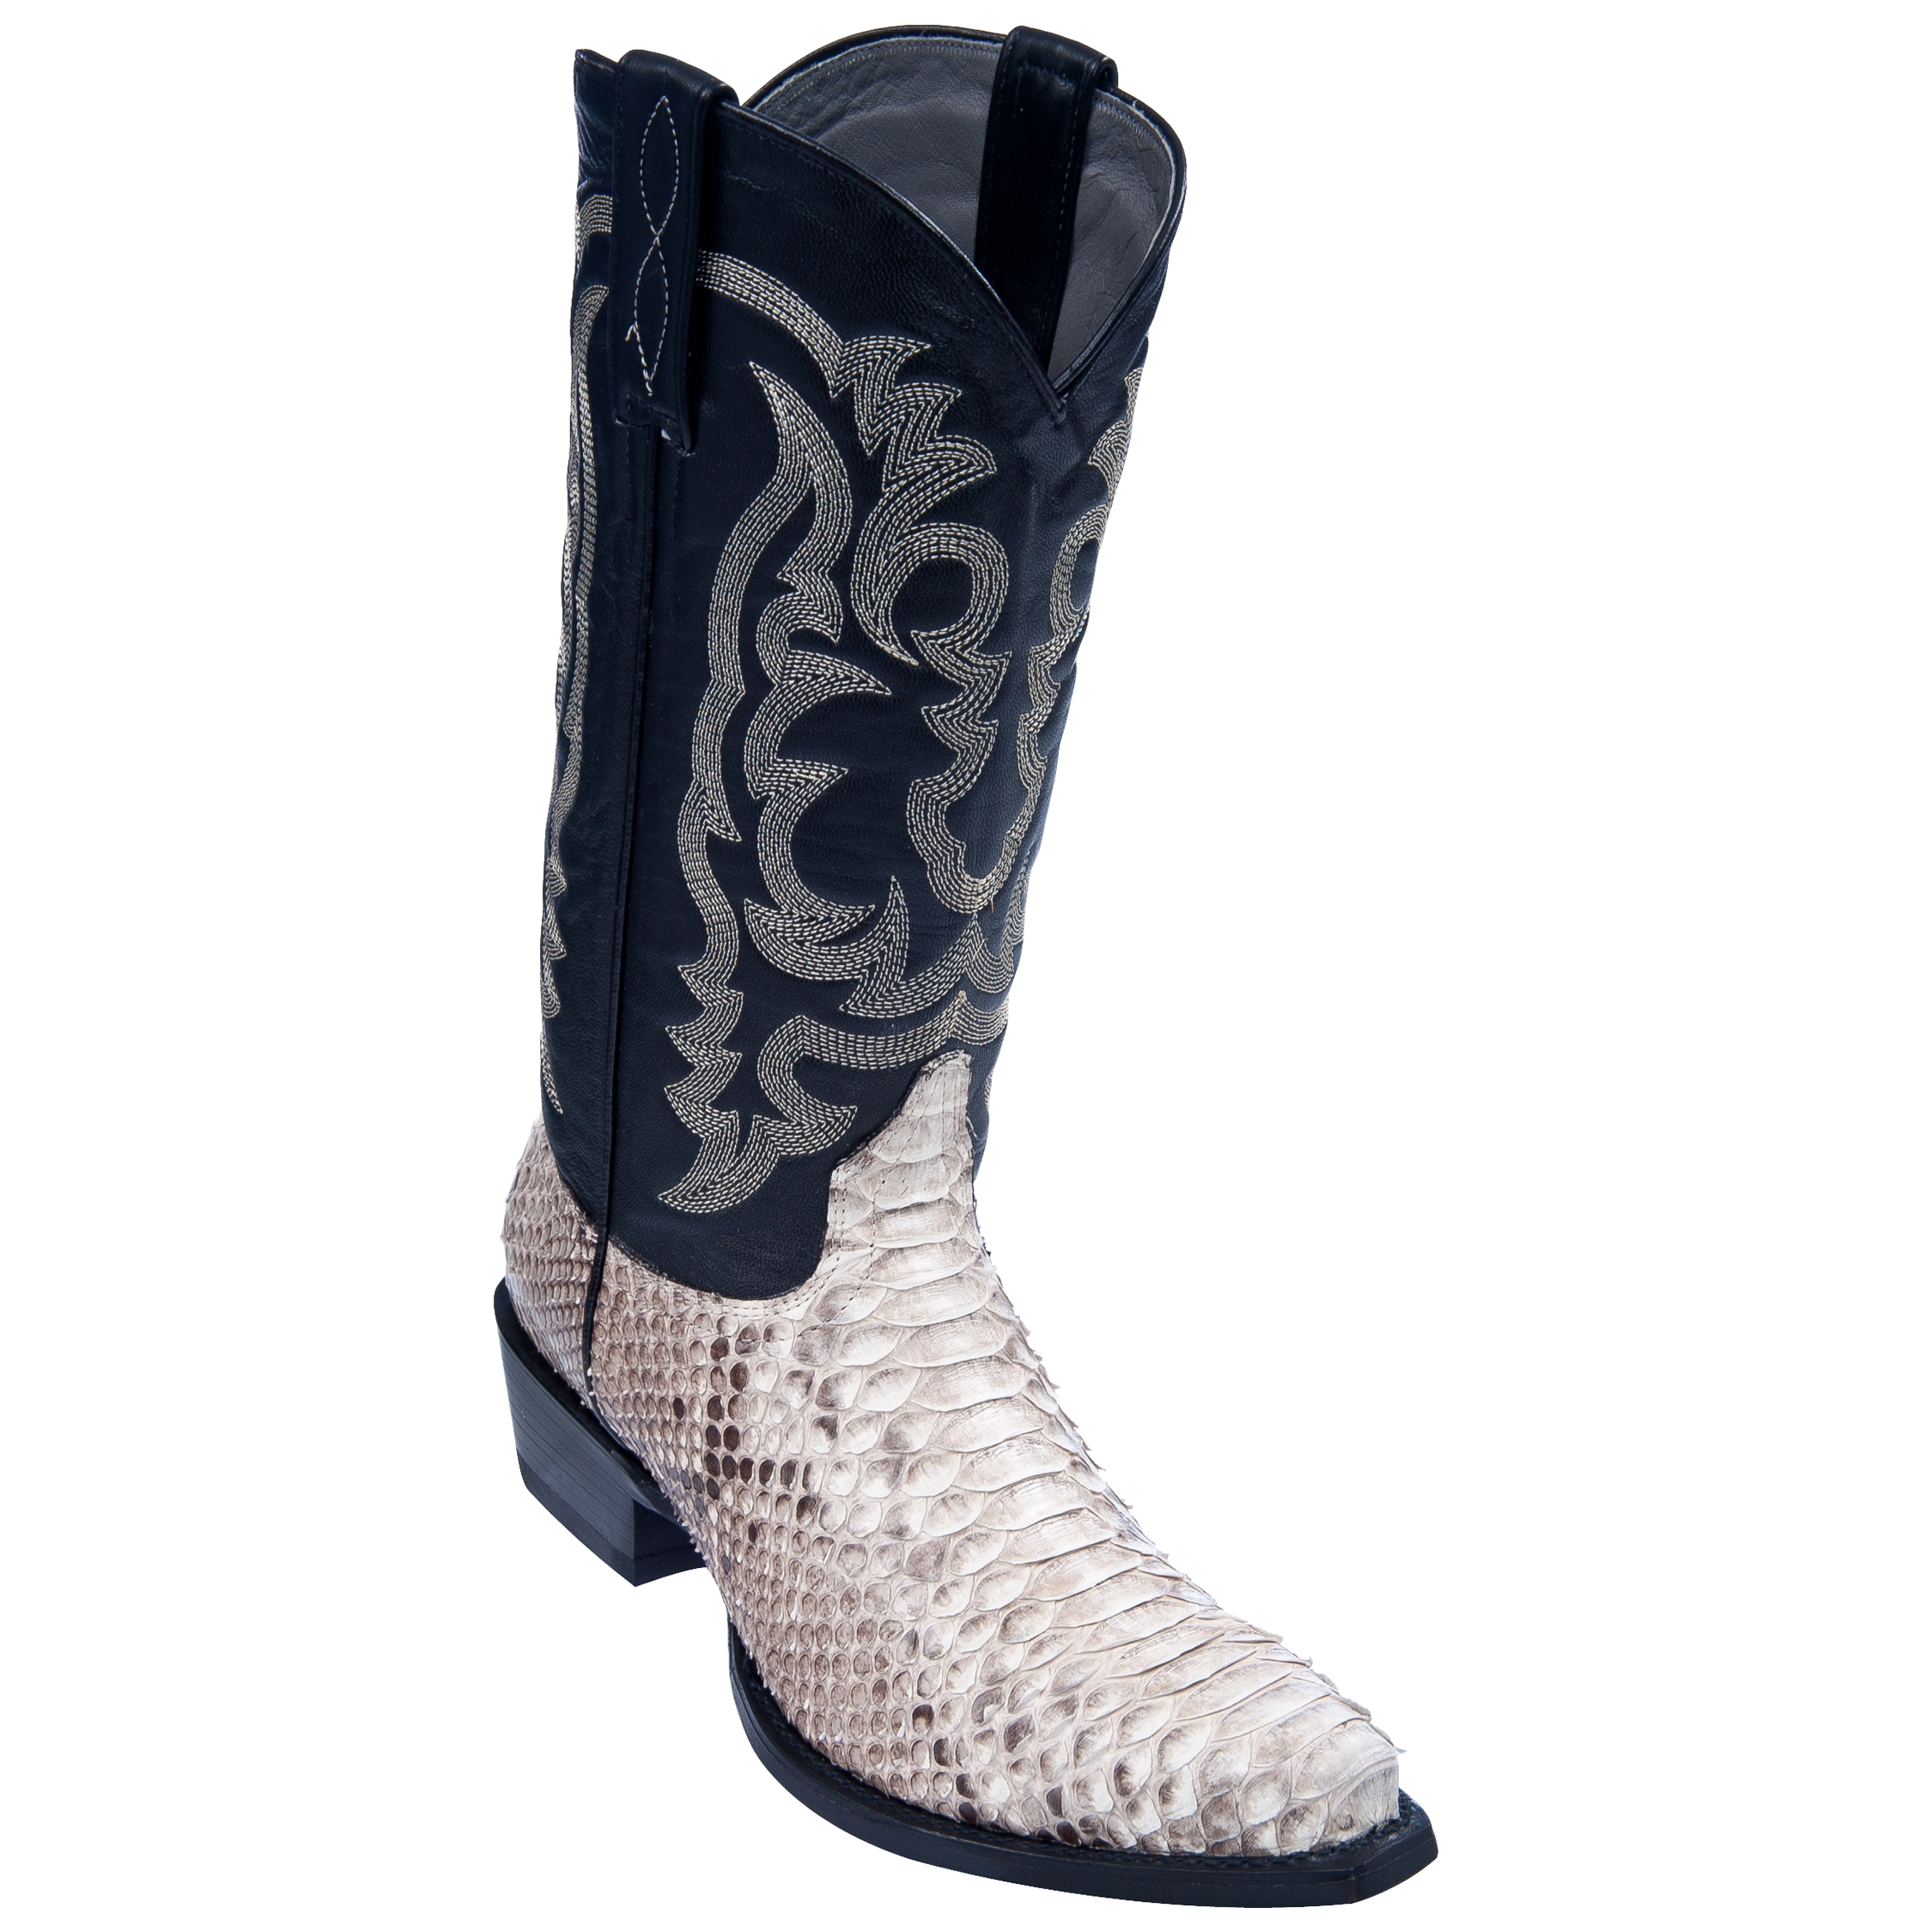 Yeehawcowboy s blog we offer the best genuine quality products that